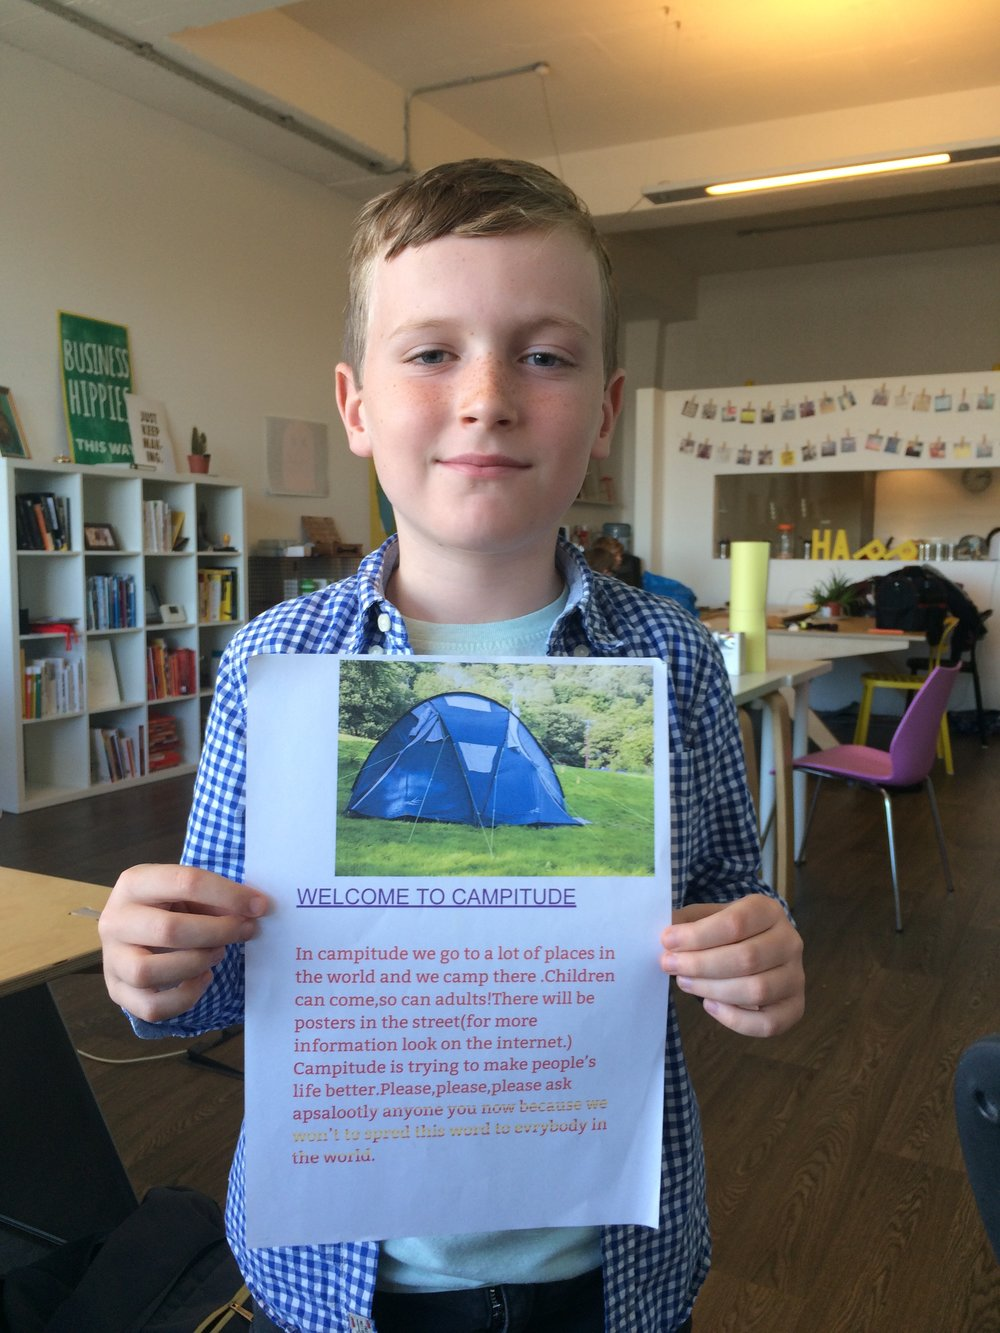 Seamus with his poster for 'Camptitude', which he'd created himself.